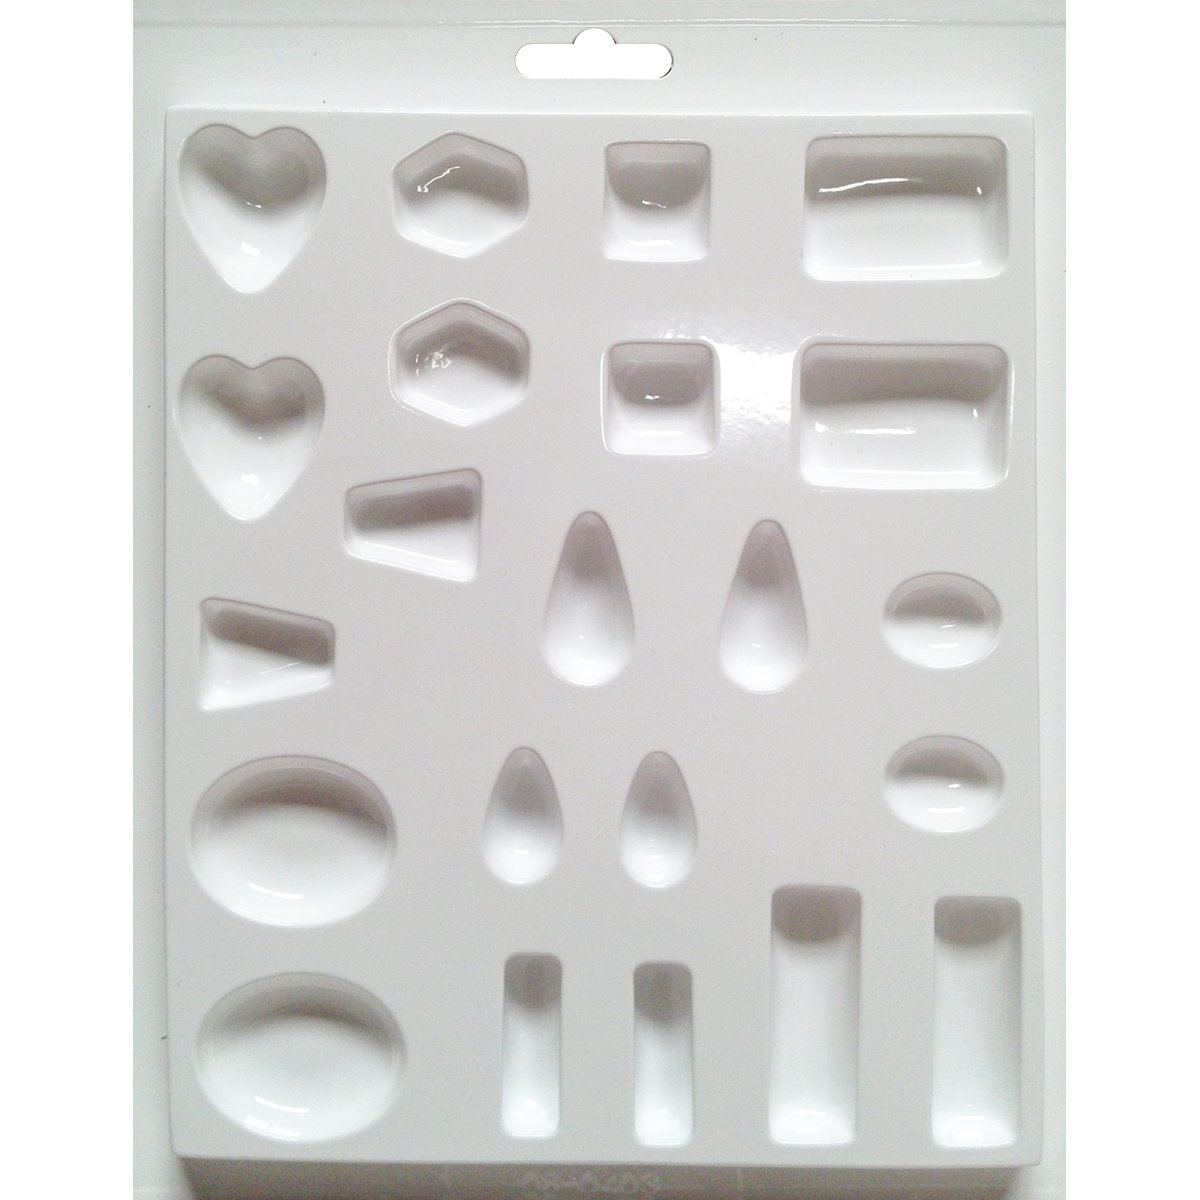 Yaley Jewelry Casting Mold, Assorted Size and Shape Jewels 02-8403